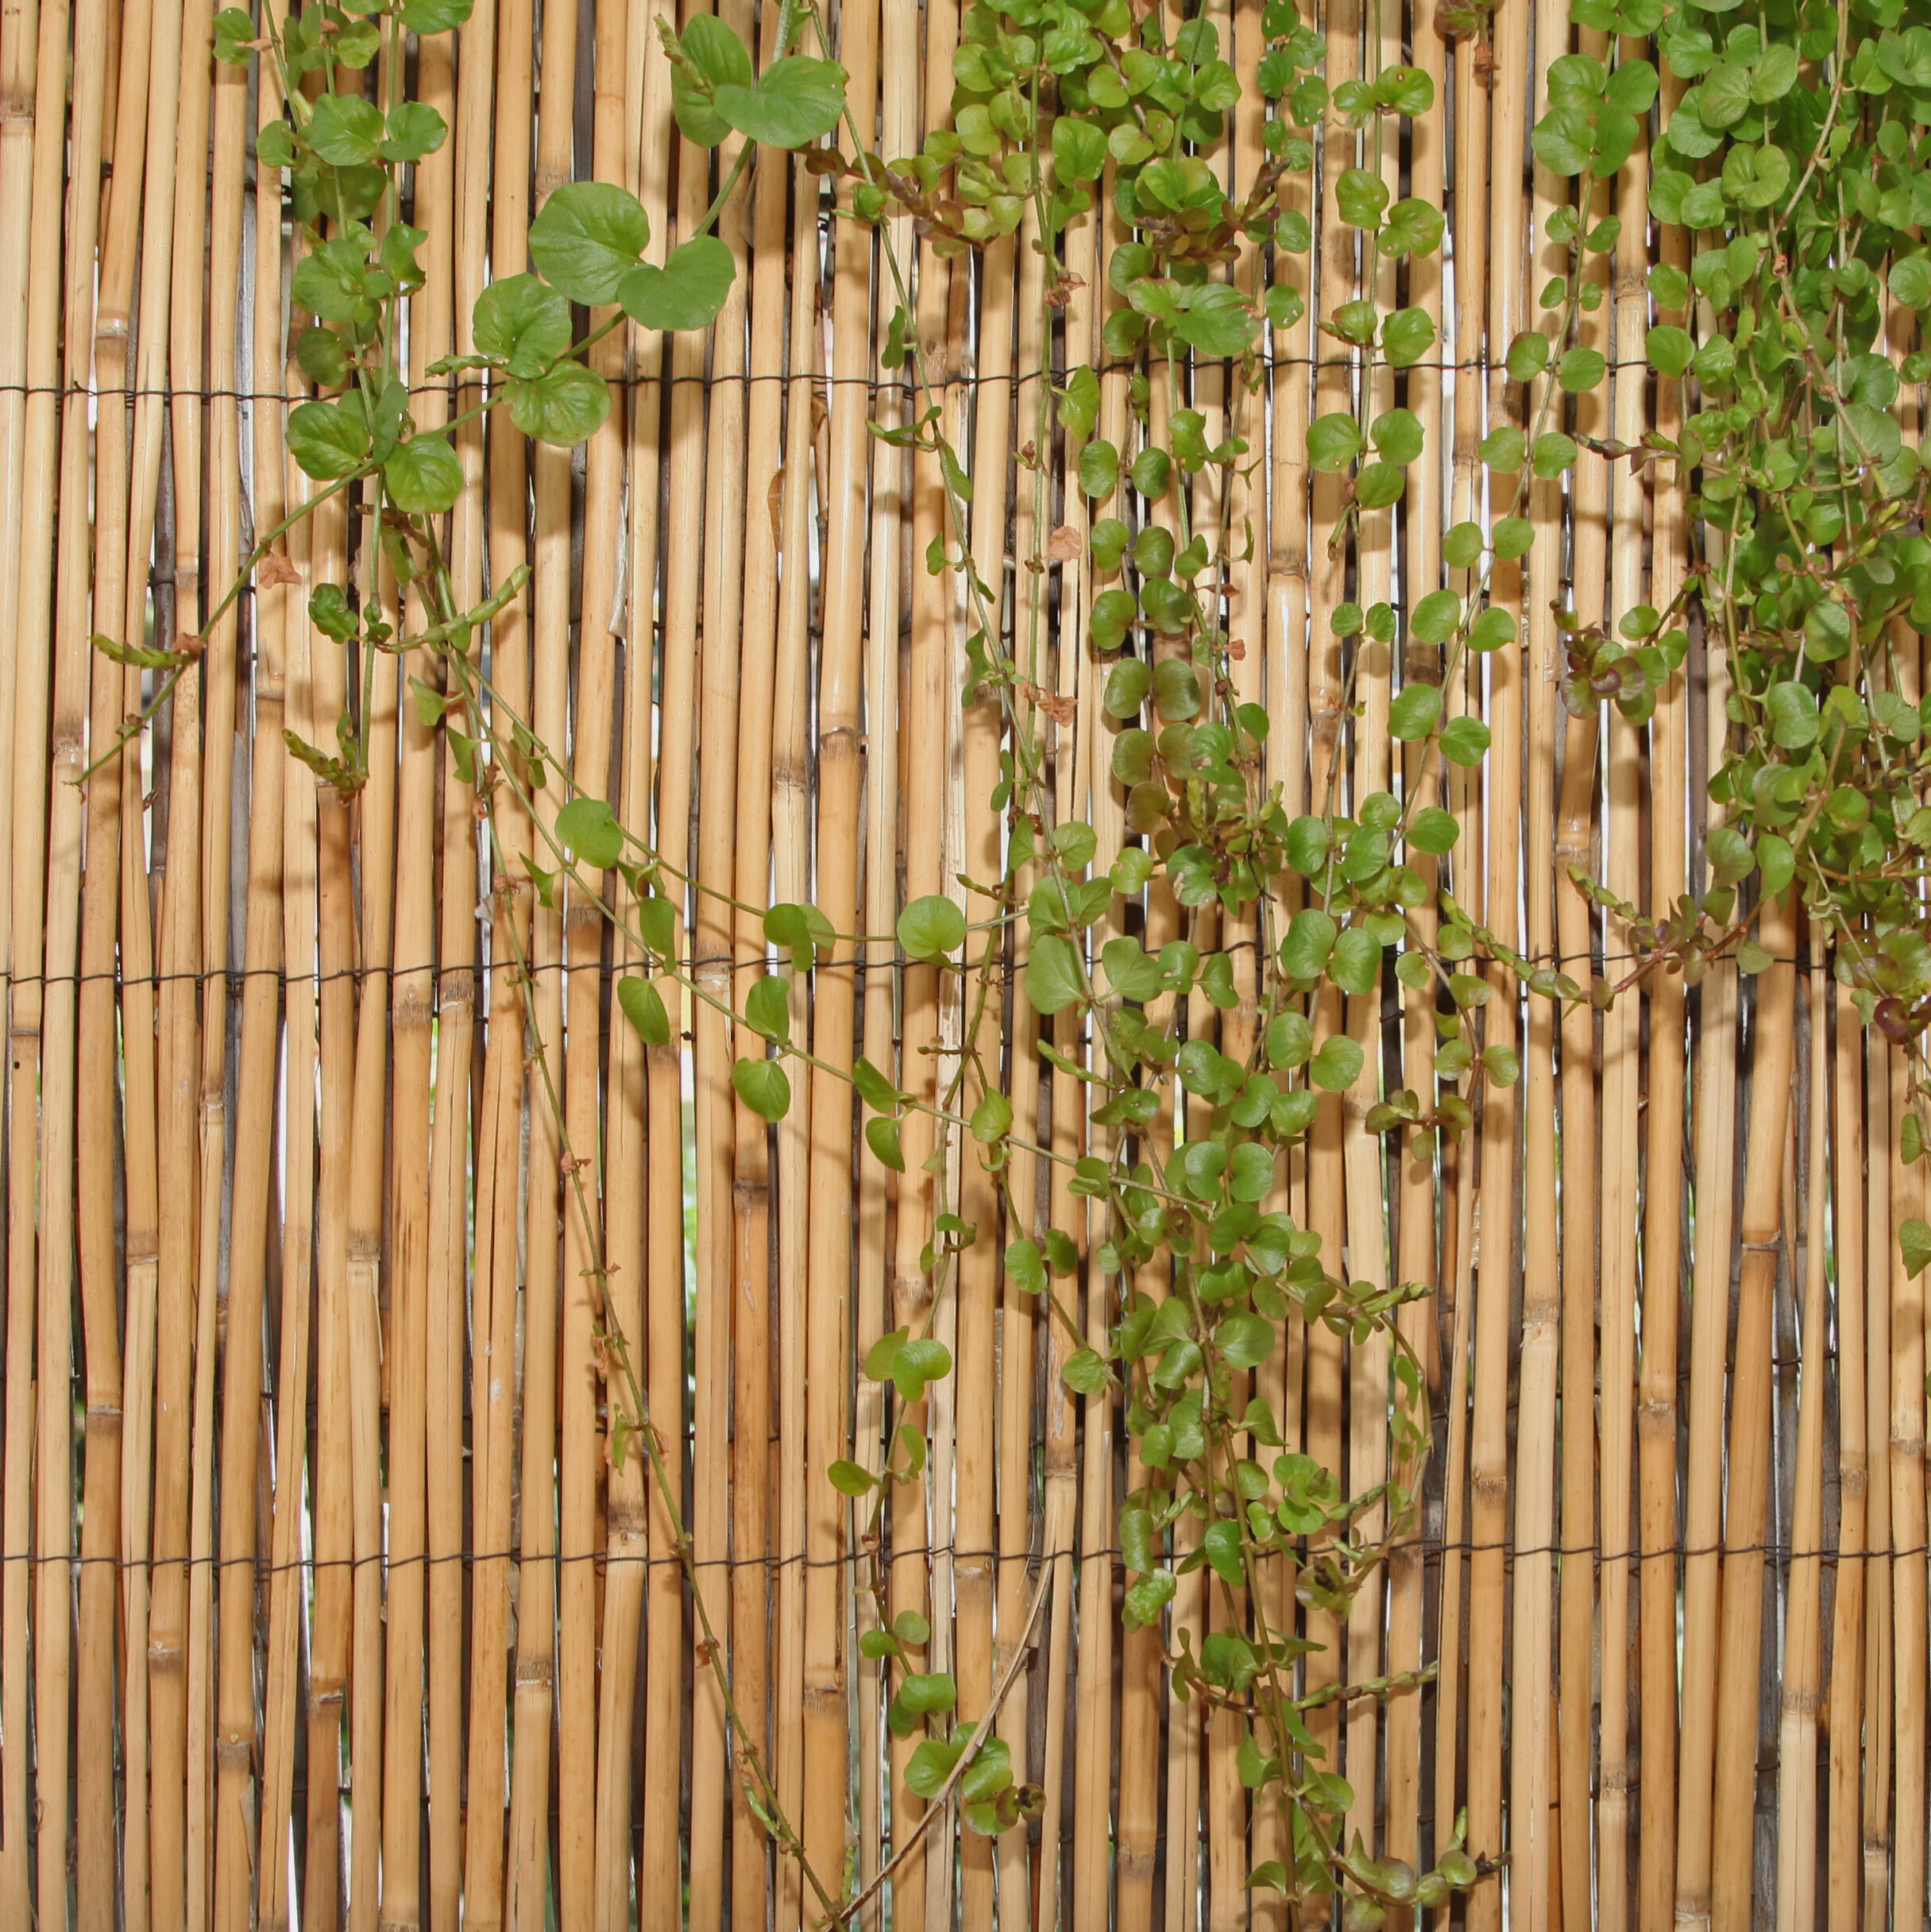 Backyard X Scapes Rolled Bamboo Fencing backyard x-scapes 6 ft. h x 16 ft. w peeled reed fencing & reviews